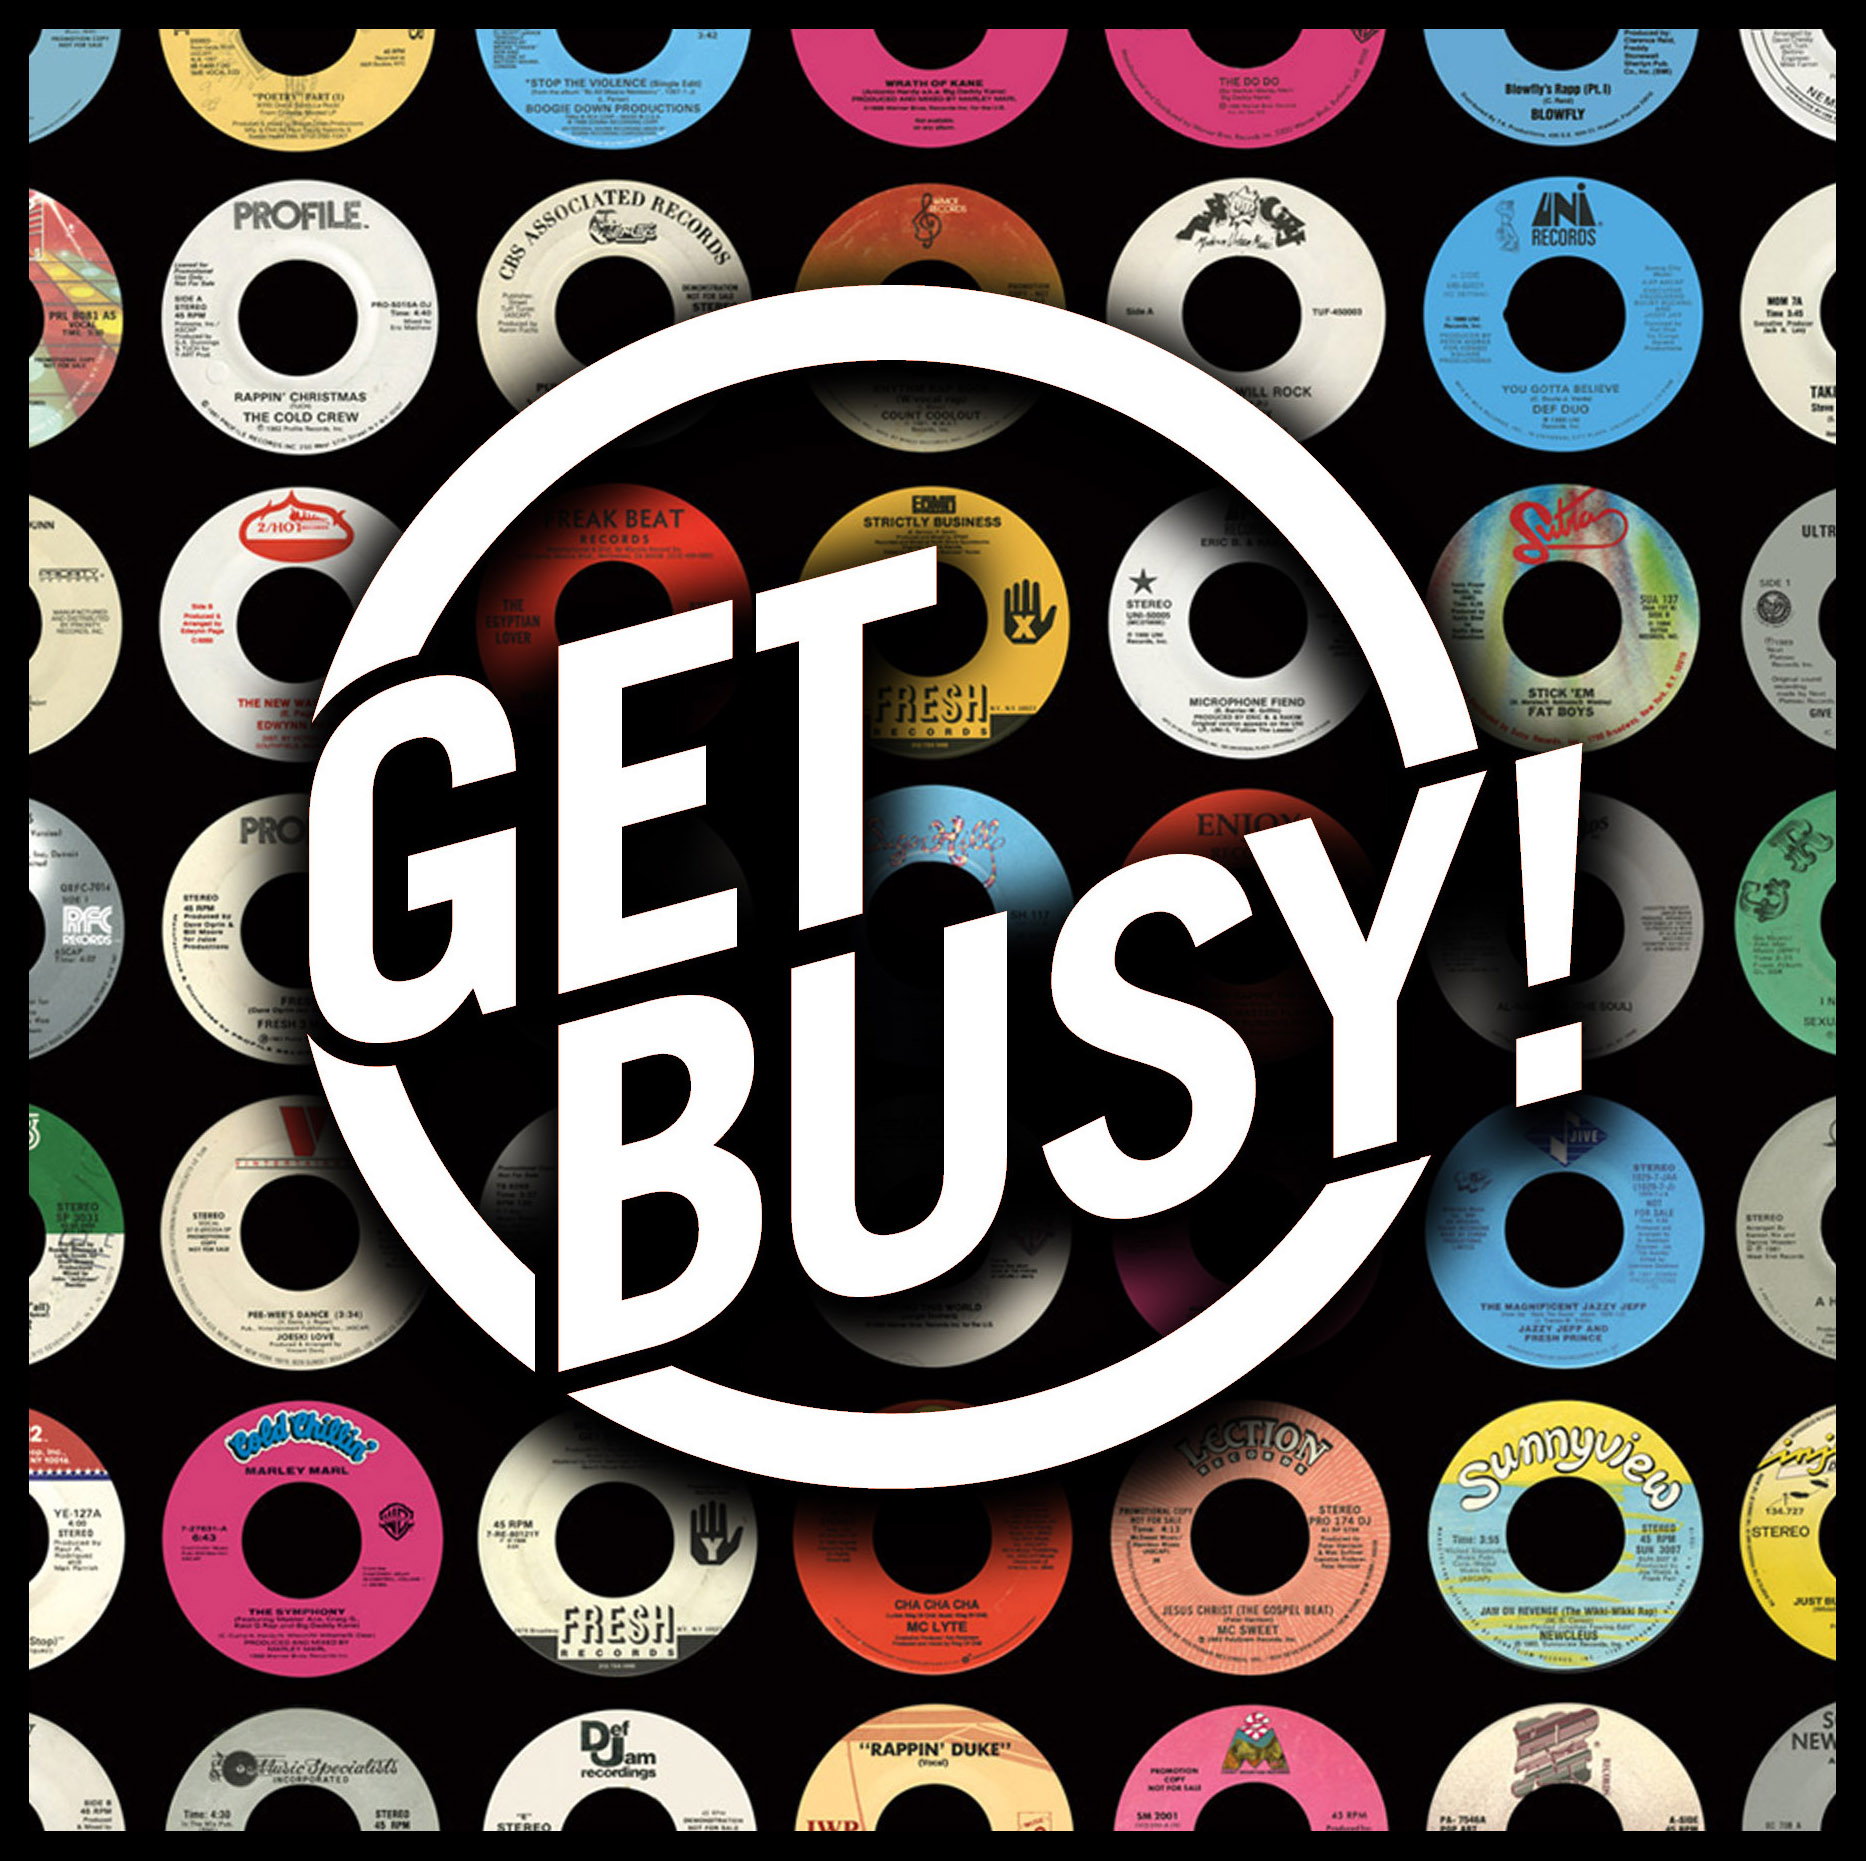 Get_Busy_Quick_Logo